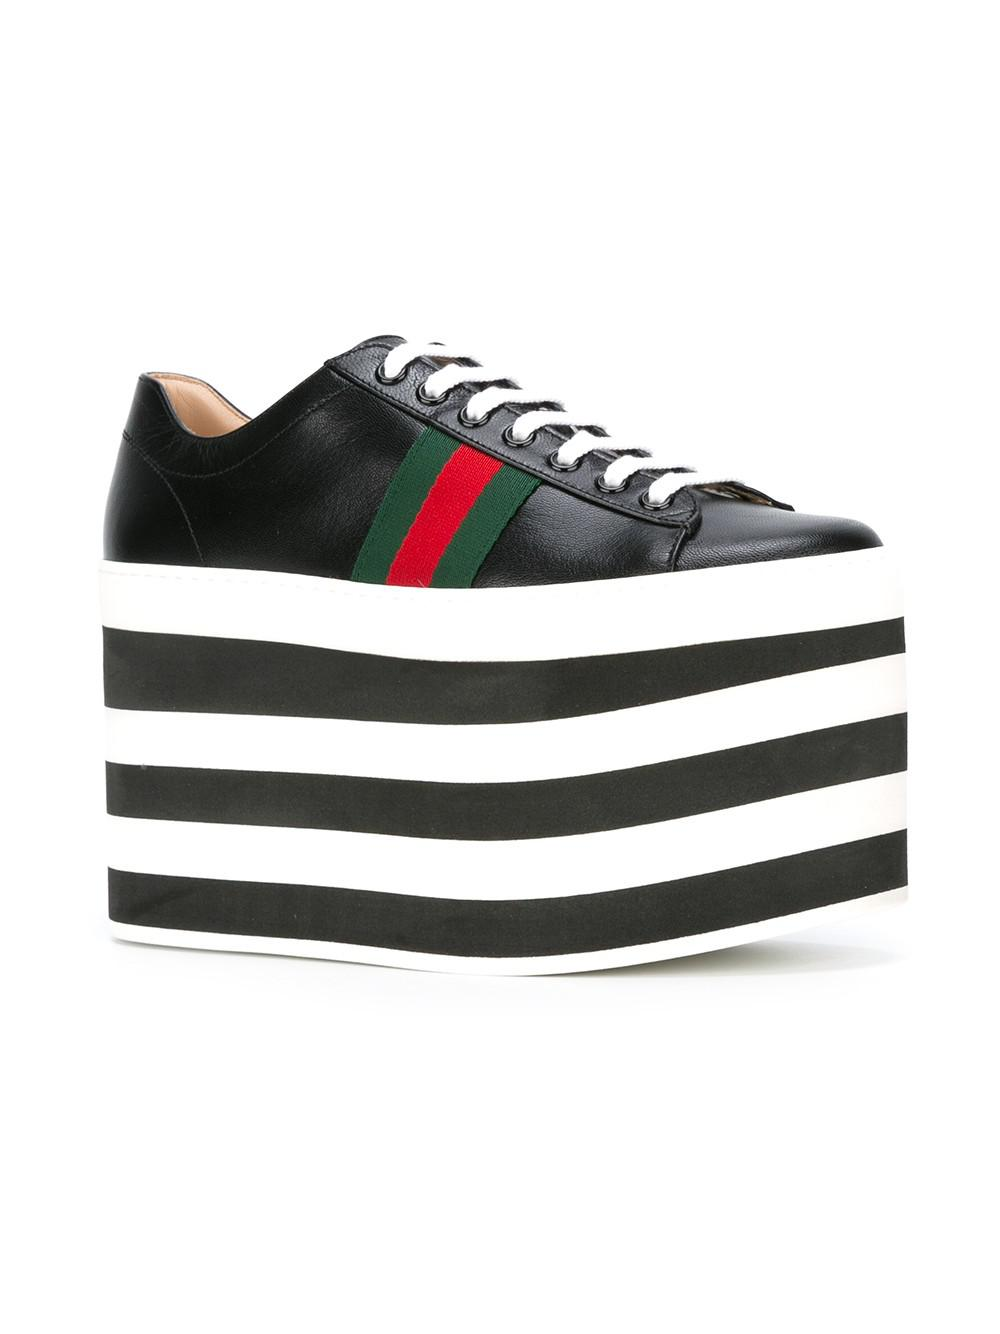 56265d16987e Gallery. Previously sold at  GENTE Roma · Women s Platform Sneakers Women s  Sperry Top ...